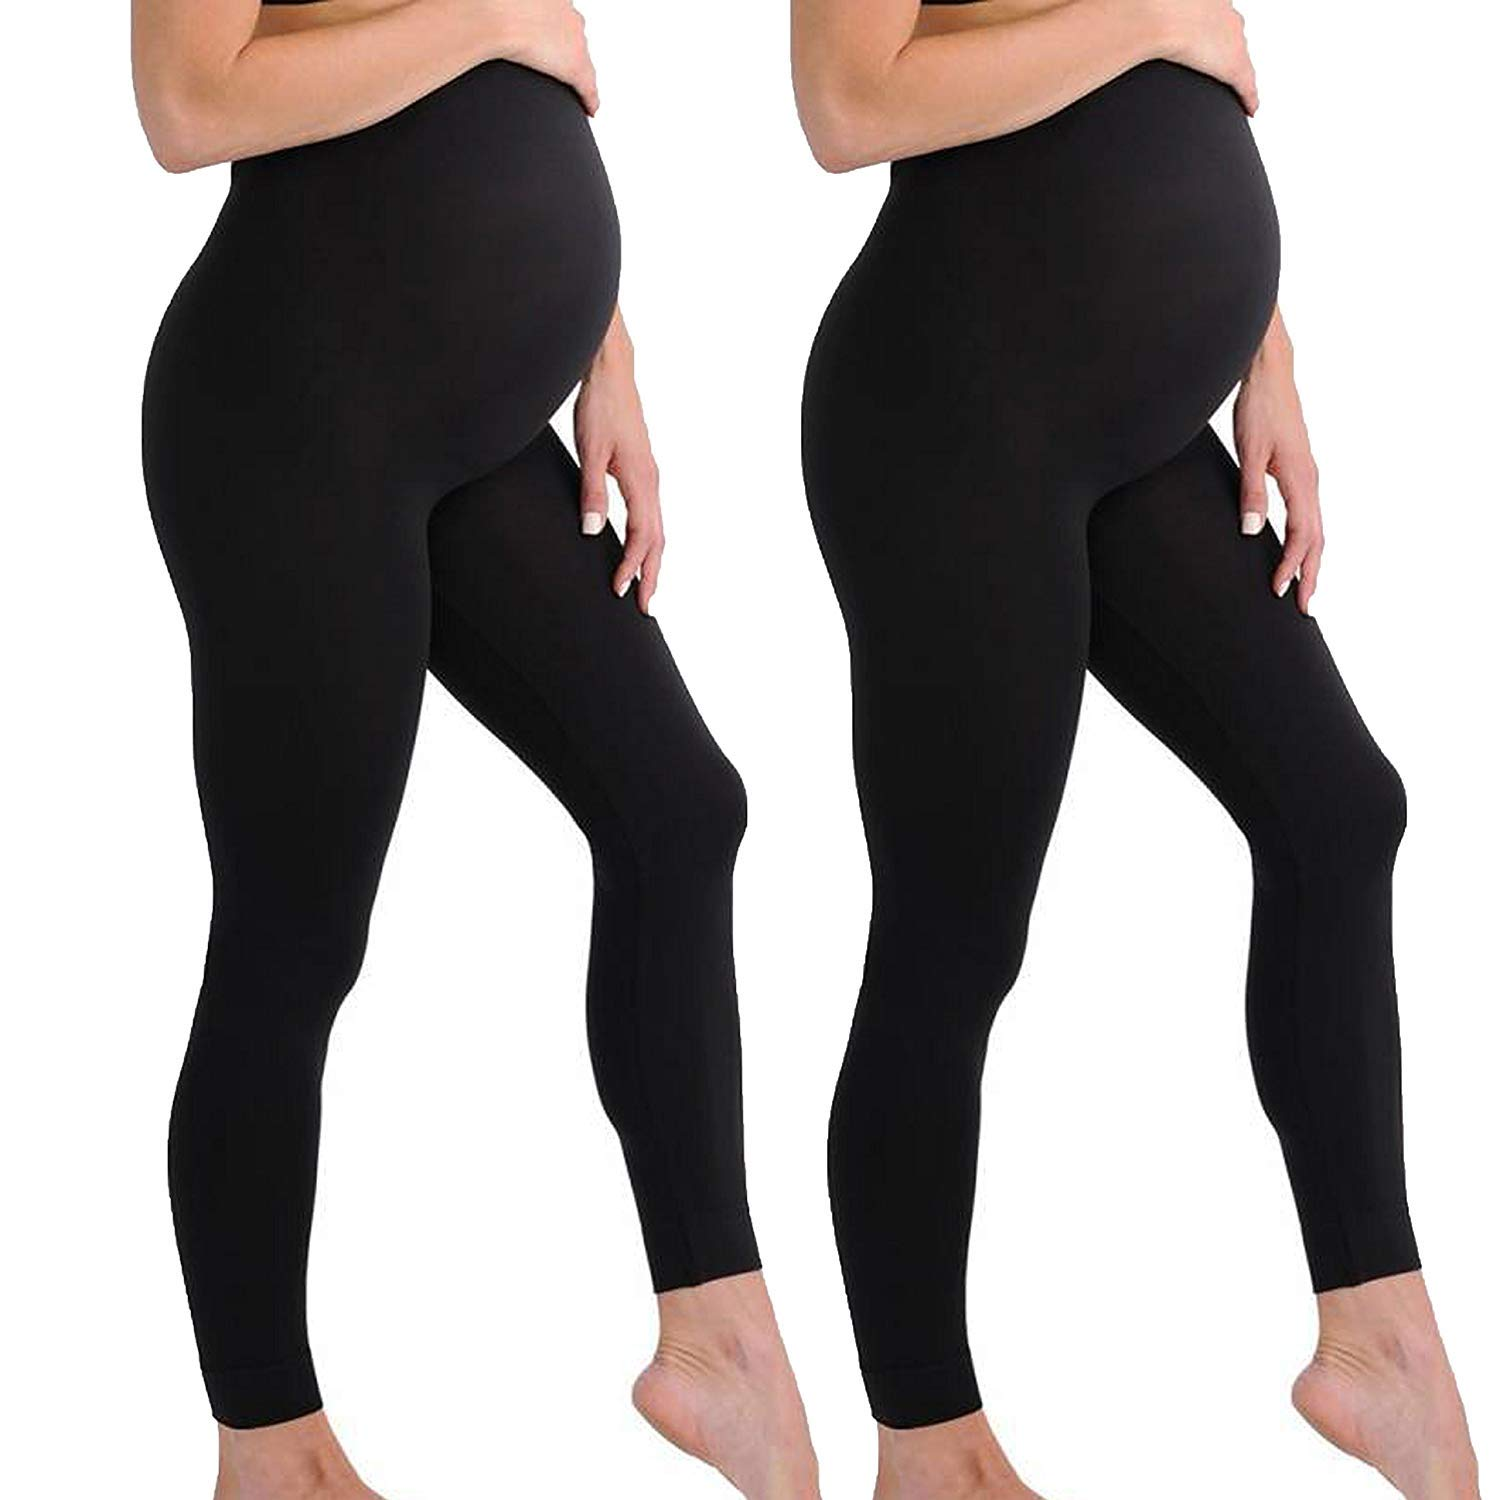 3046c2d3ccd7d Touch Me Maternity Leggings Black Navy Grey Soft Solid Stretch Seamless  Tights One Size Fits All Active Wear Yoga Gym Clothes (Maternity - One Size  Fits All ...